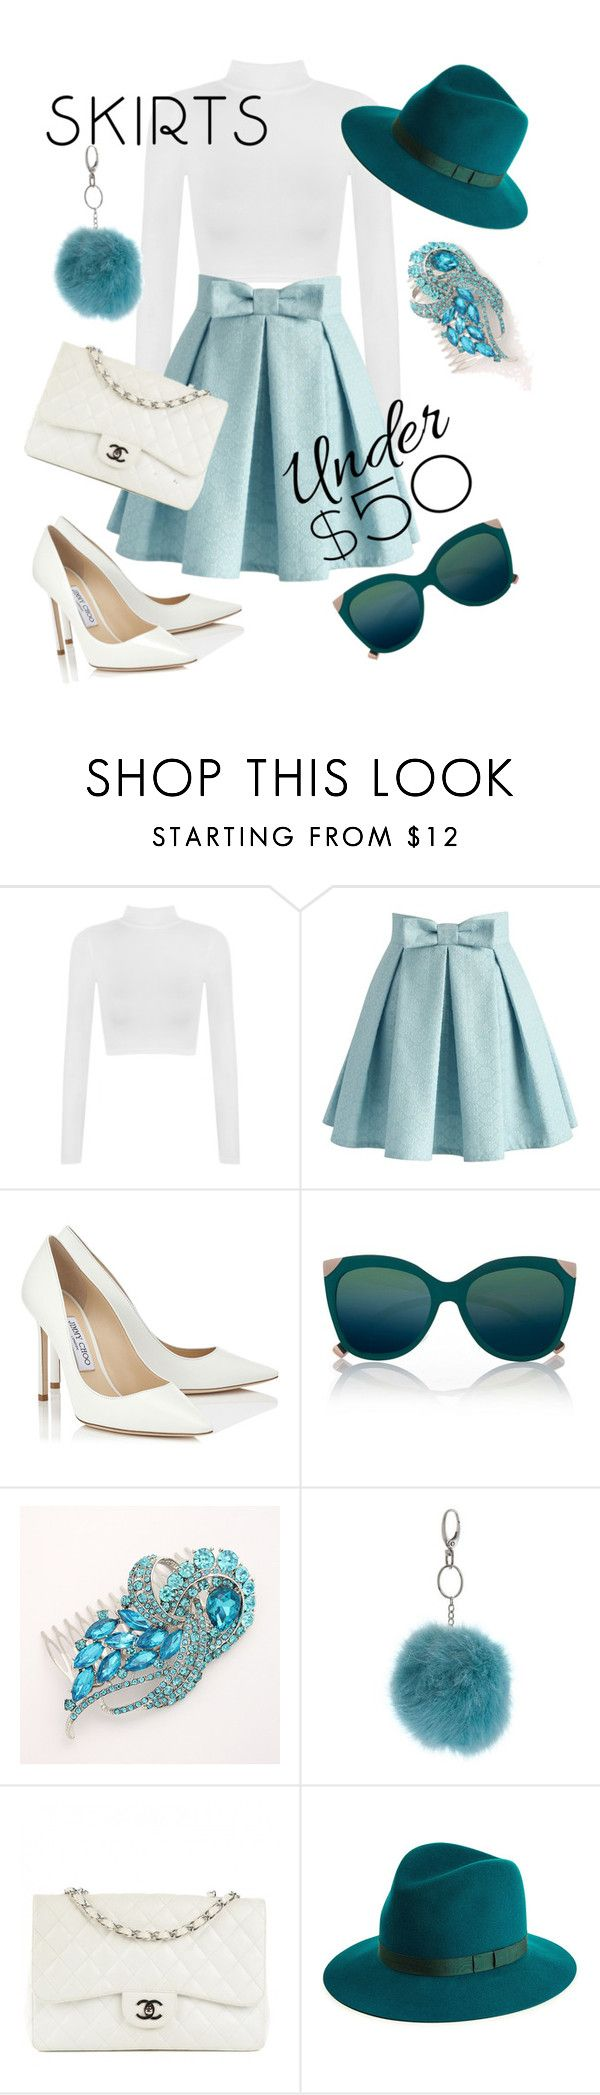 """Skirts under 50"" by stylebycharlene on Polyvore featuring WearAll, Chicwish, Jimmy Choo, River Island, Miss Selfridge, Chanel, rag & bone, outfit, under50 and skirtunder50"